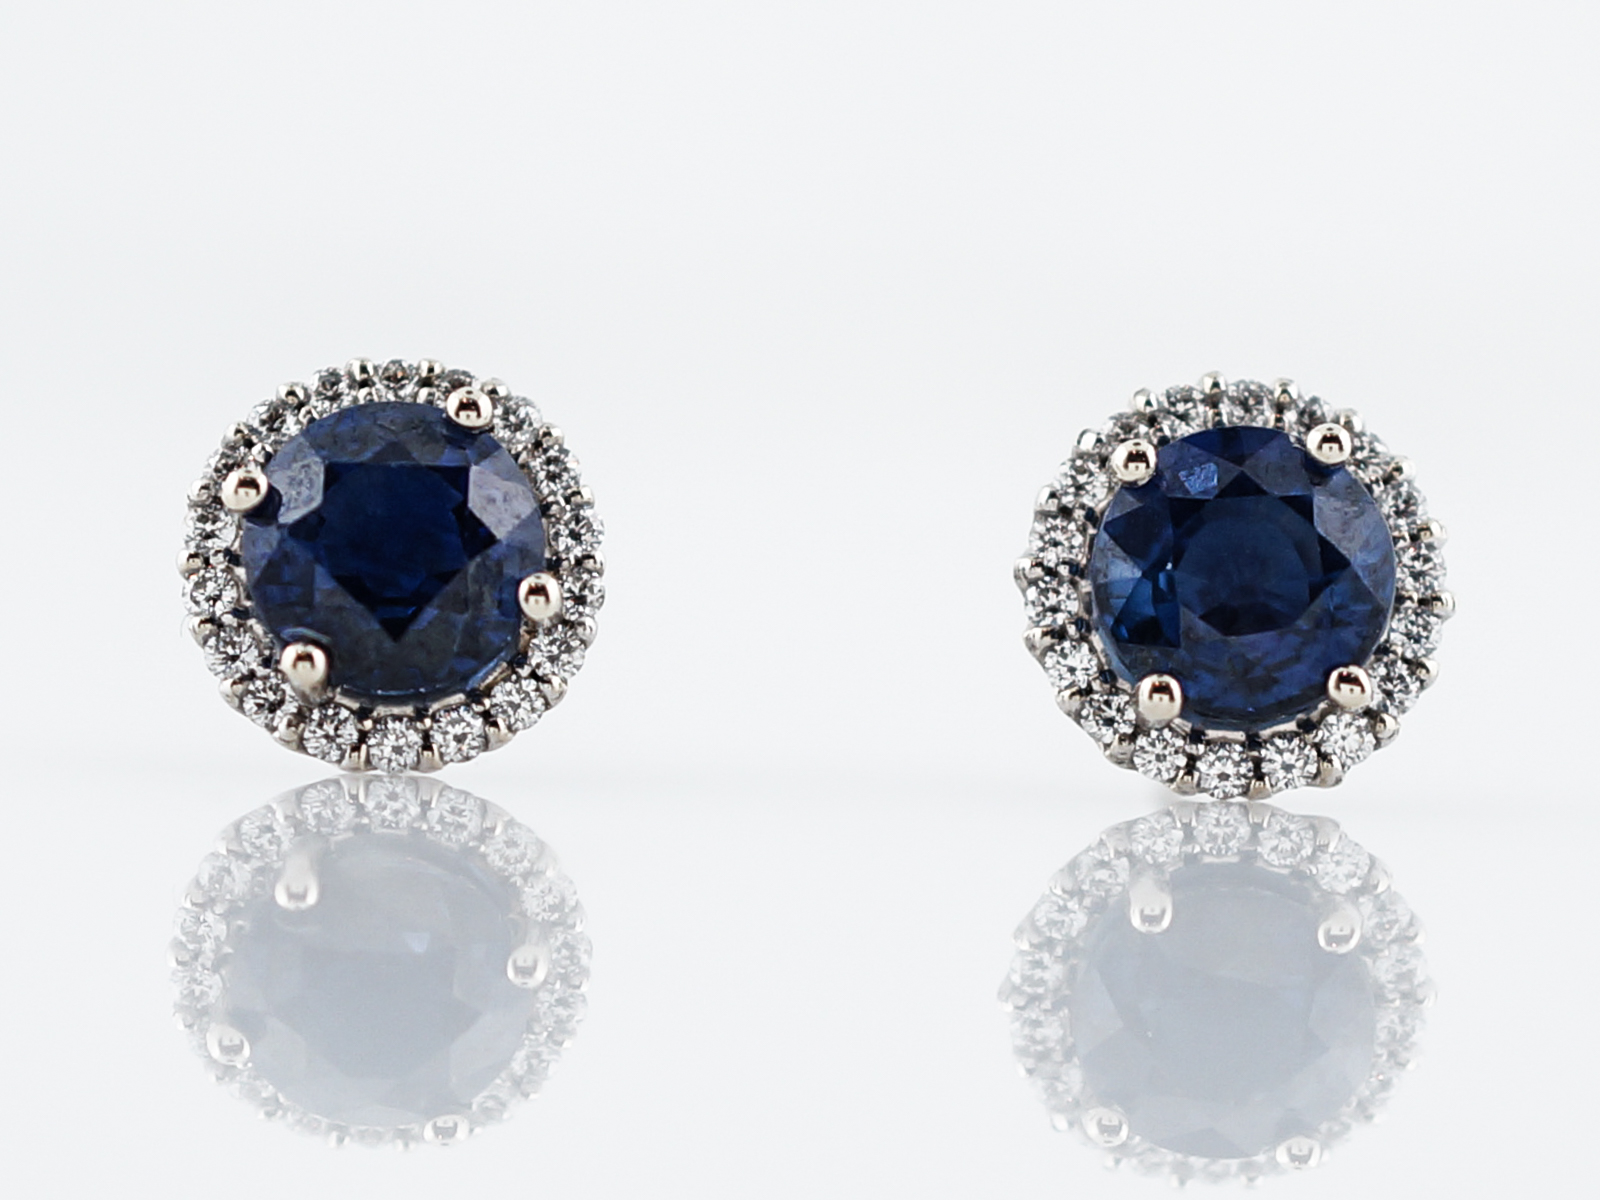 Modern Earrings 1.80 Round Cut Sapphires in 14k White Gold -1